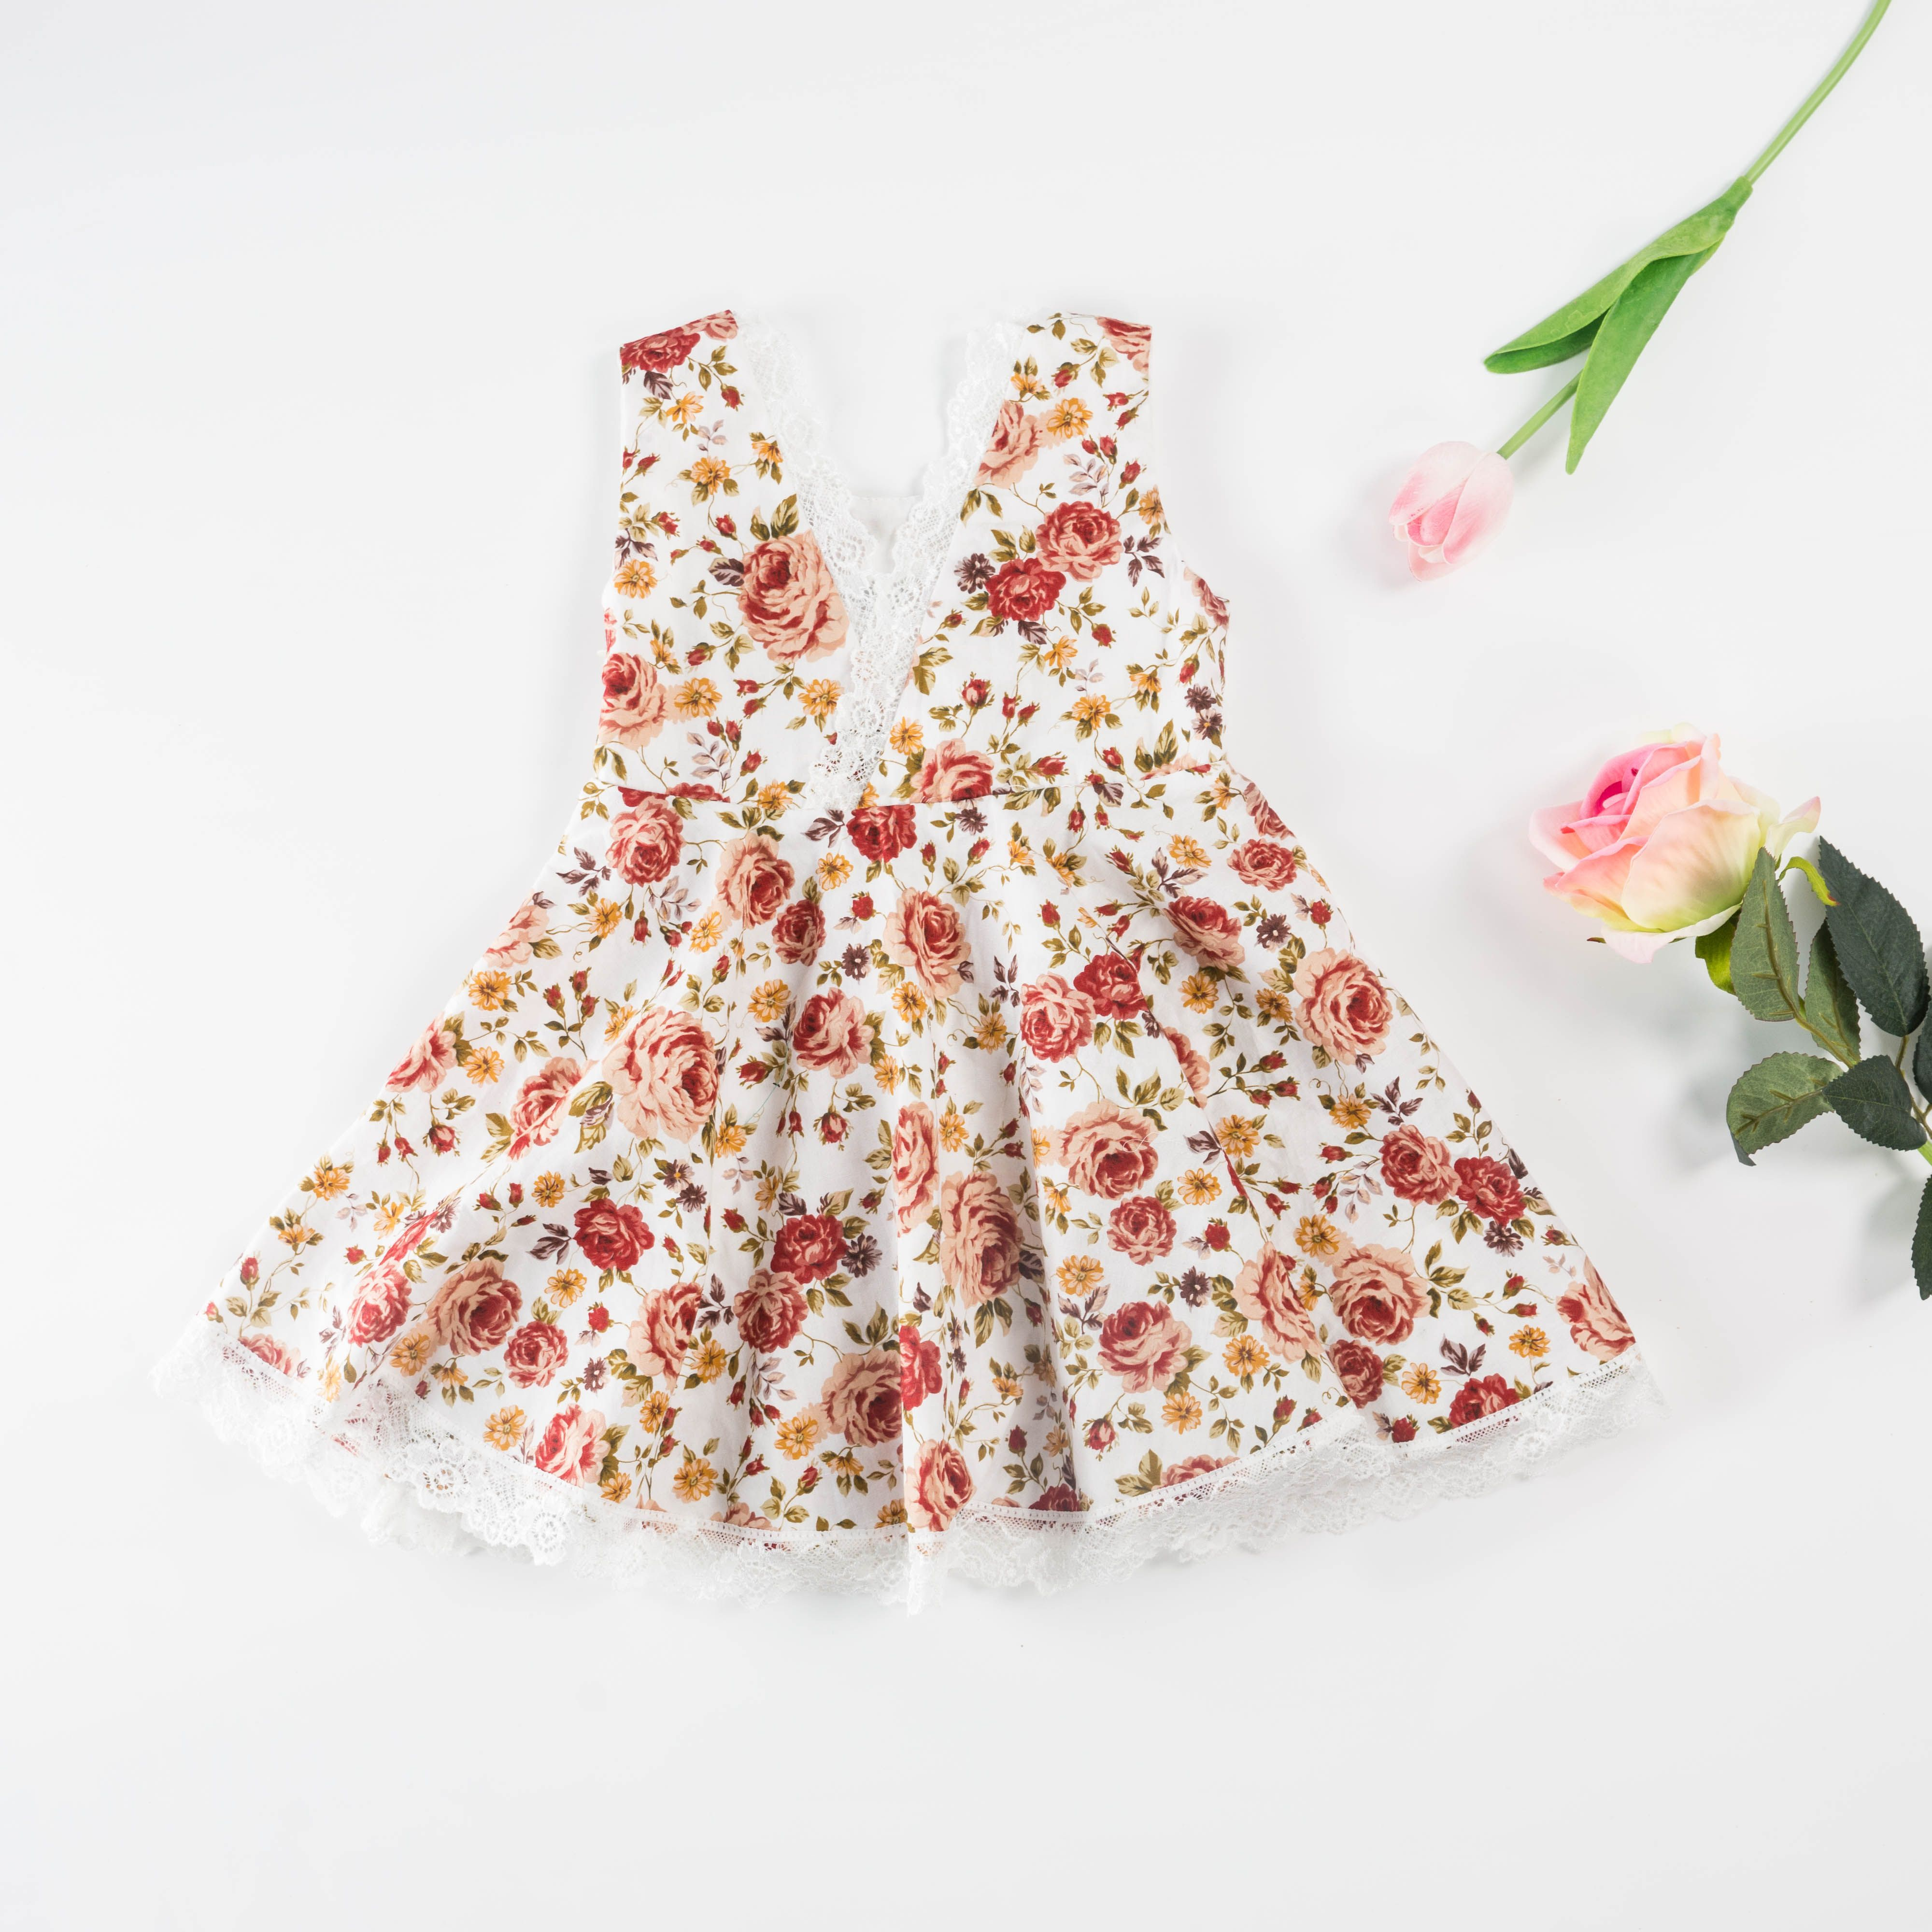 ad60f00ef60 Check out my new Pretty Floral Cinched Sleeveless Dress in White for Baby  and Toddler Girl